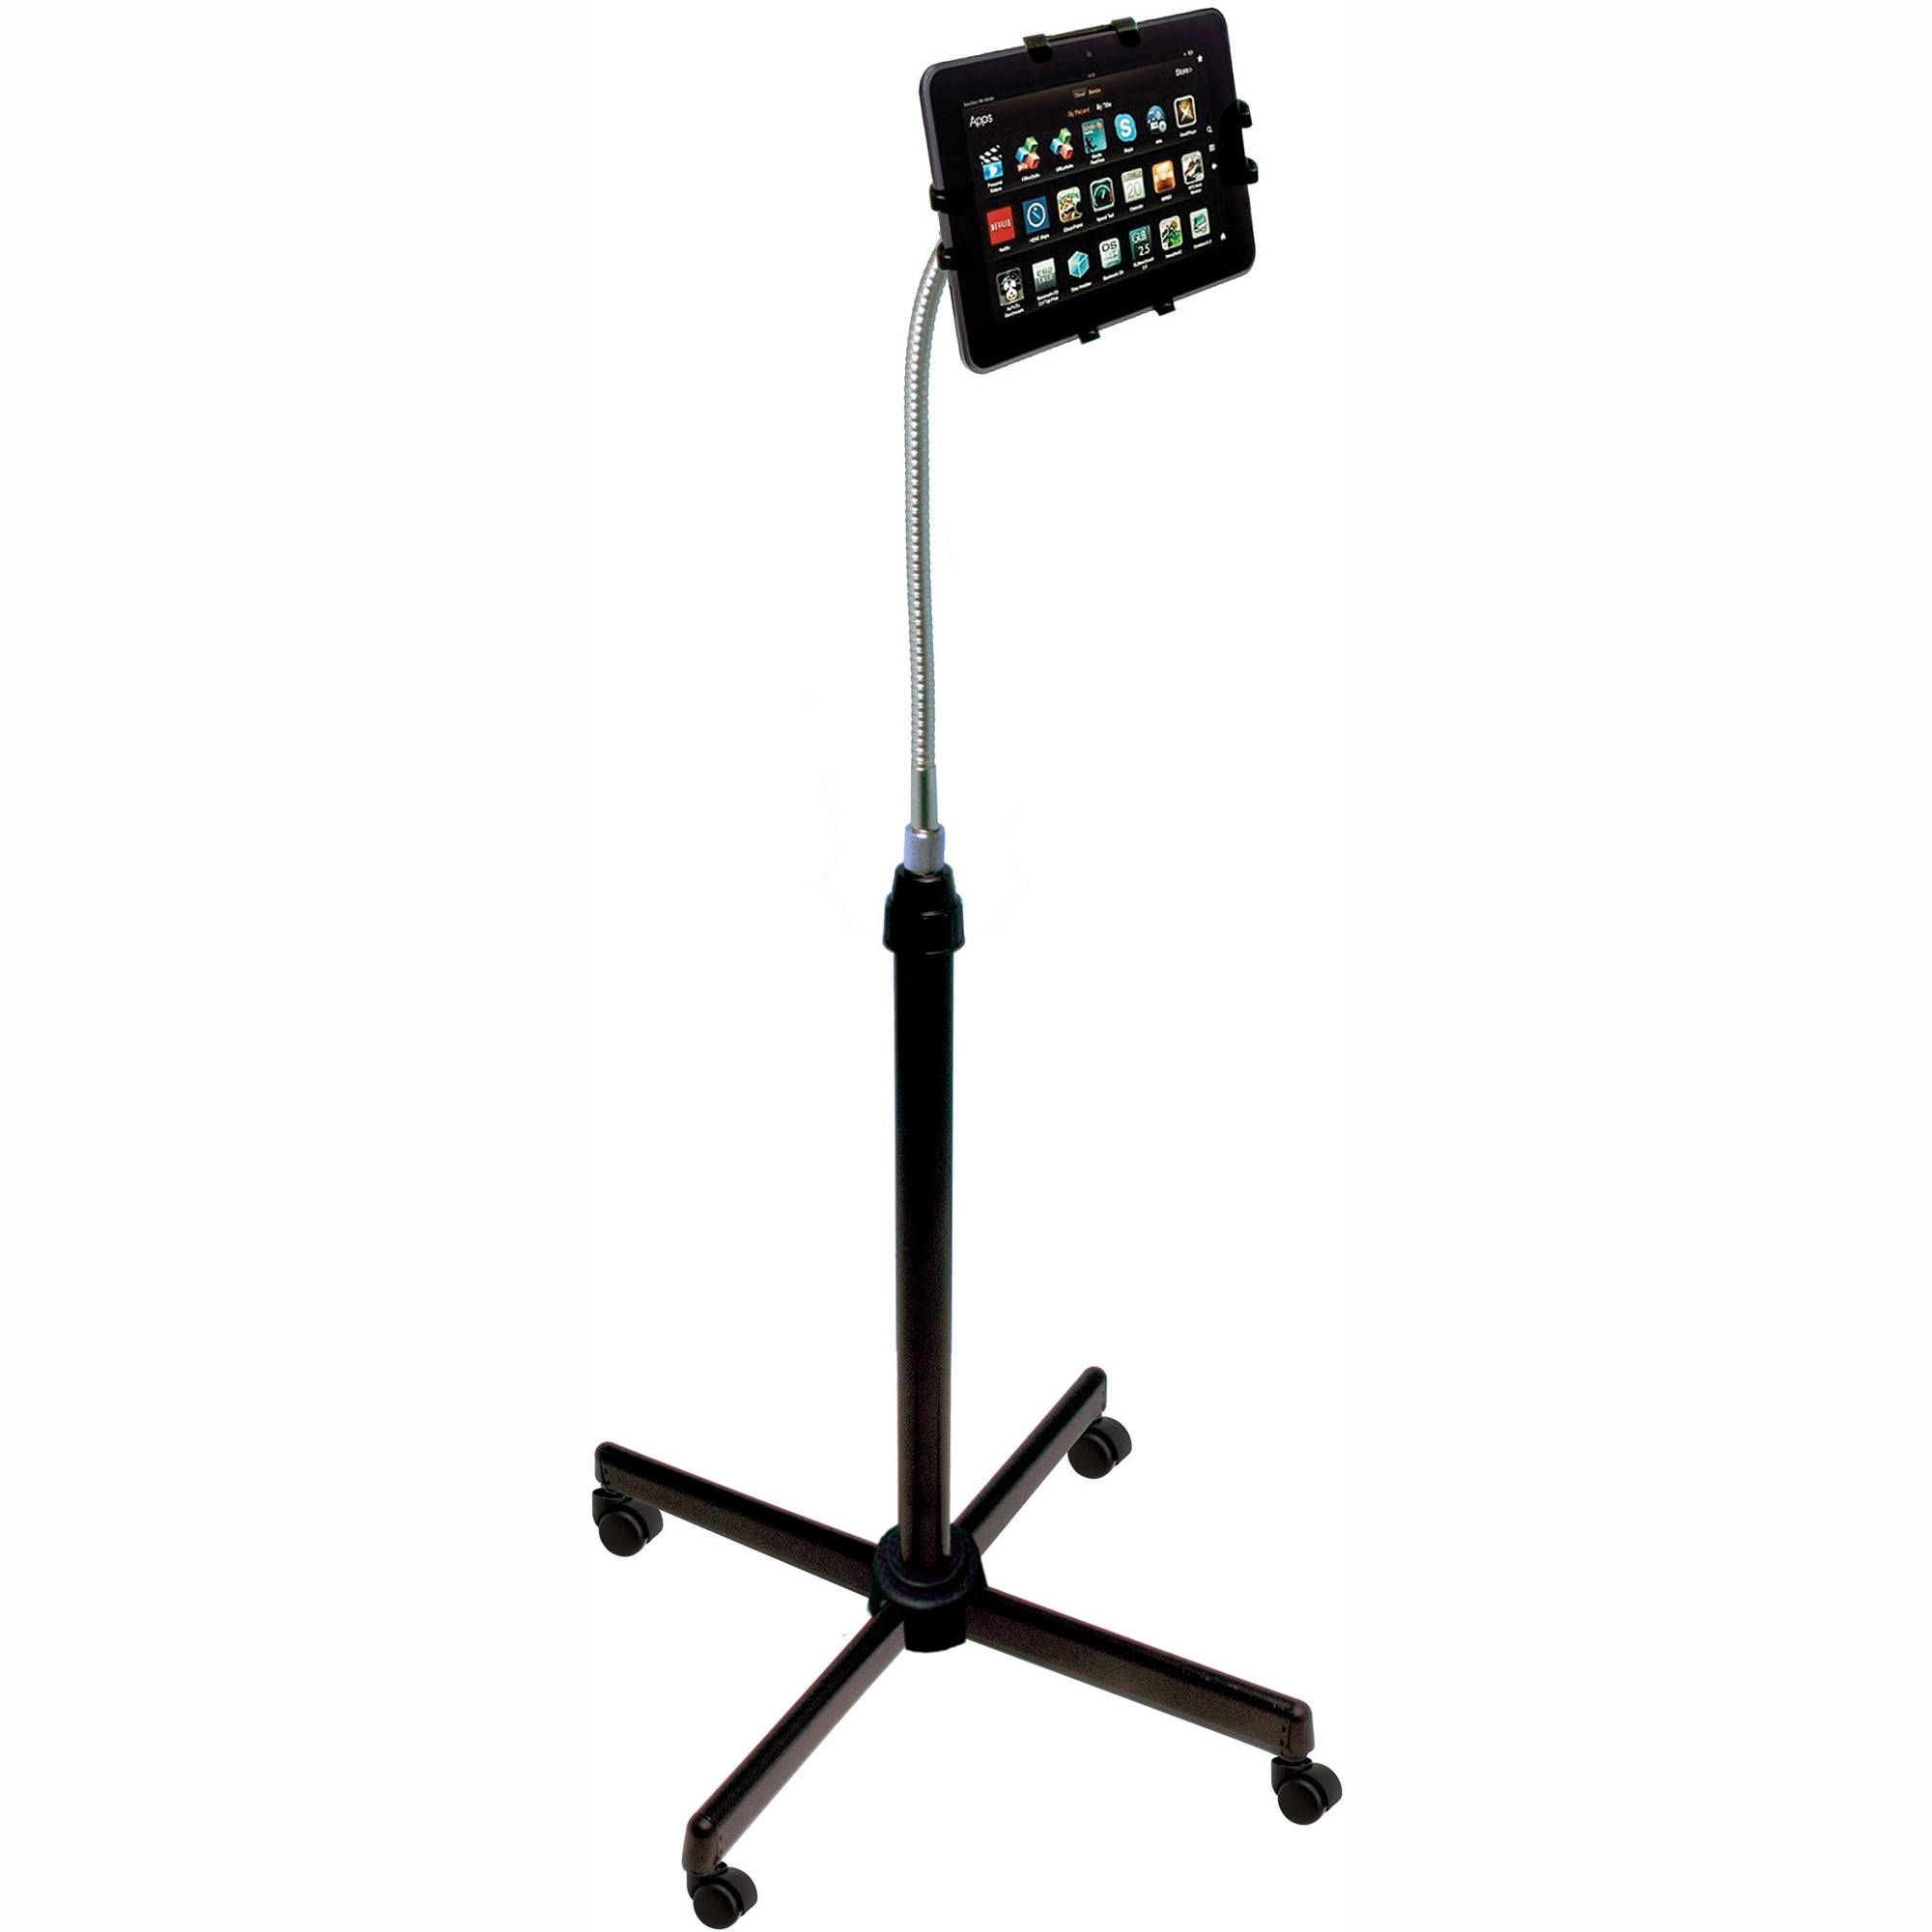 cta digital height adjustable gooseneck stand pad uafs b amp h best ipad floor stand for bed heavy duty office chairs